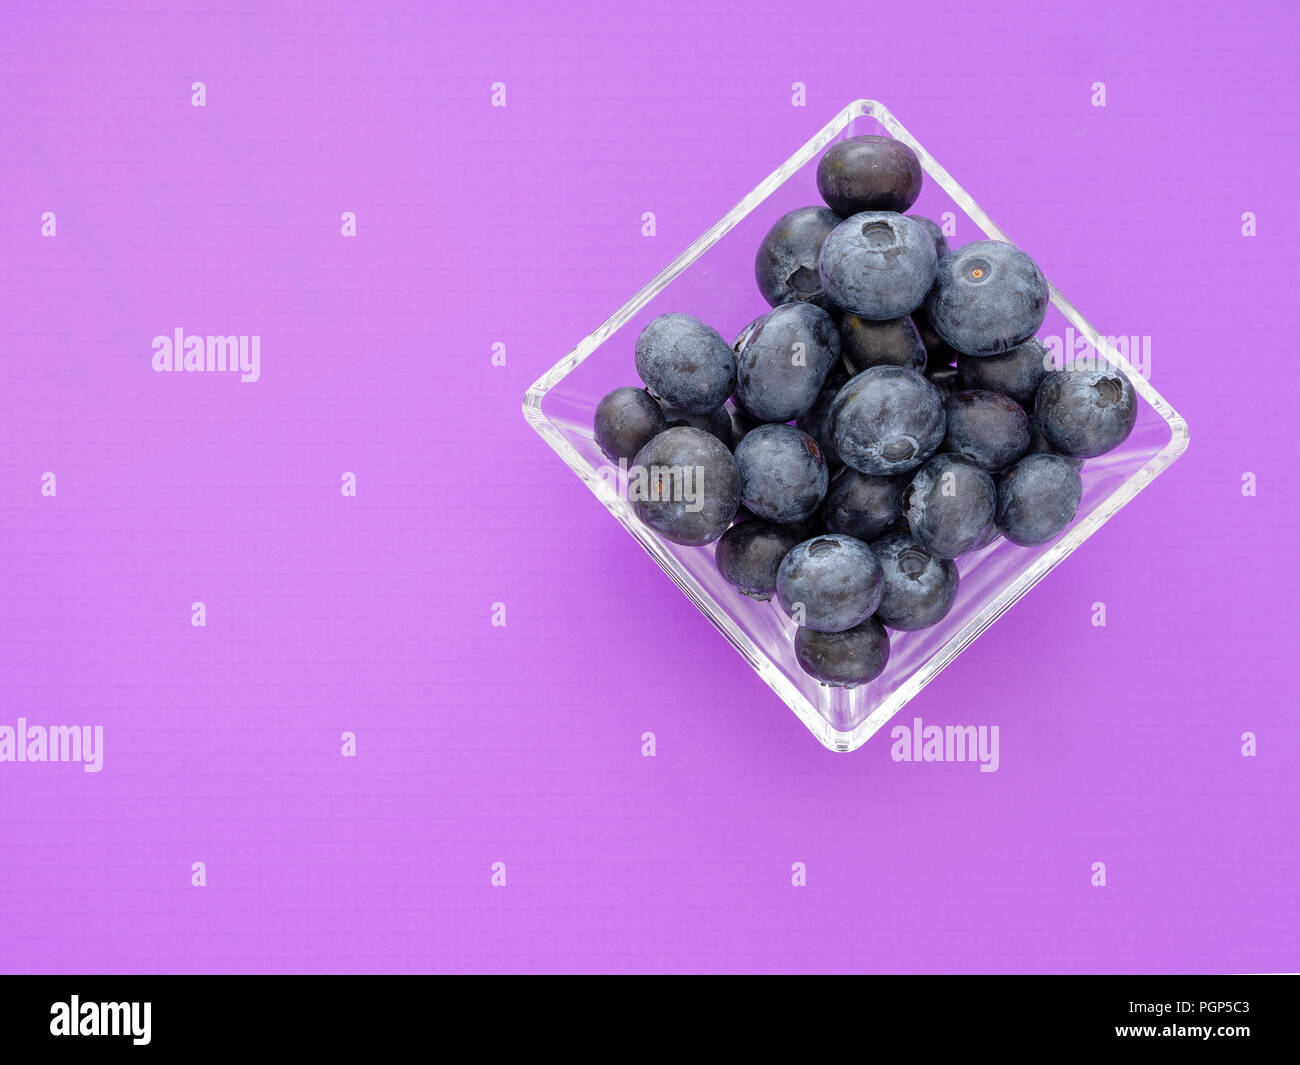 Healthy superfood blueberries in square glass bowl on beautiful purple background. With copyspace. - Stock Image